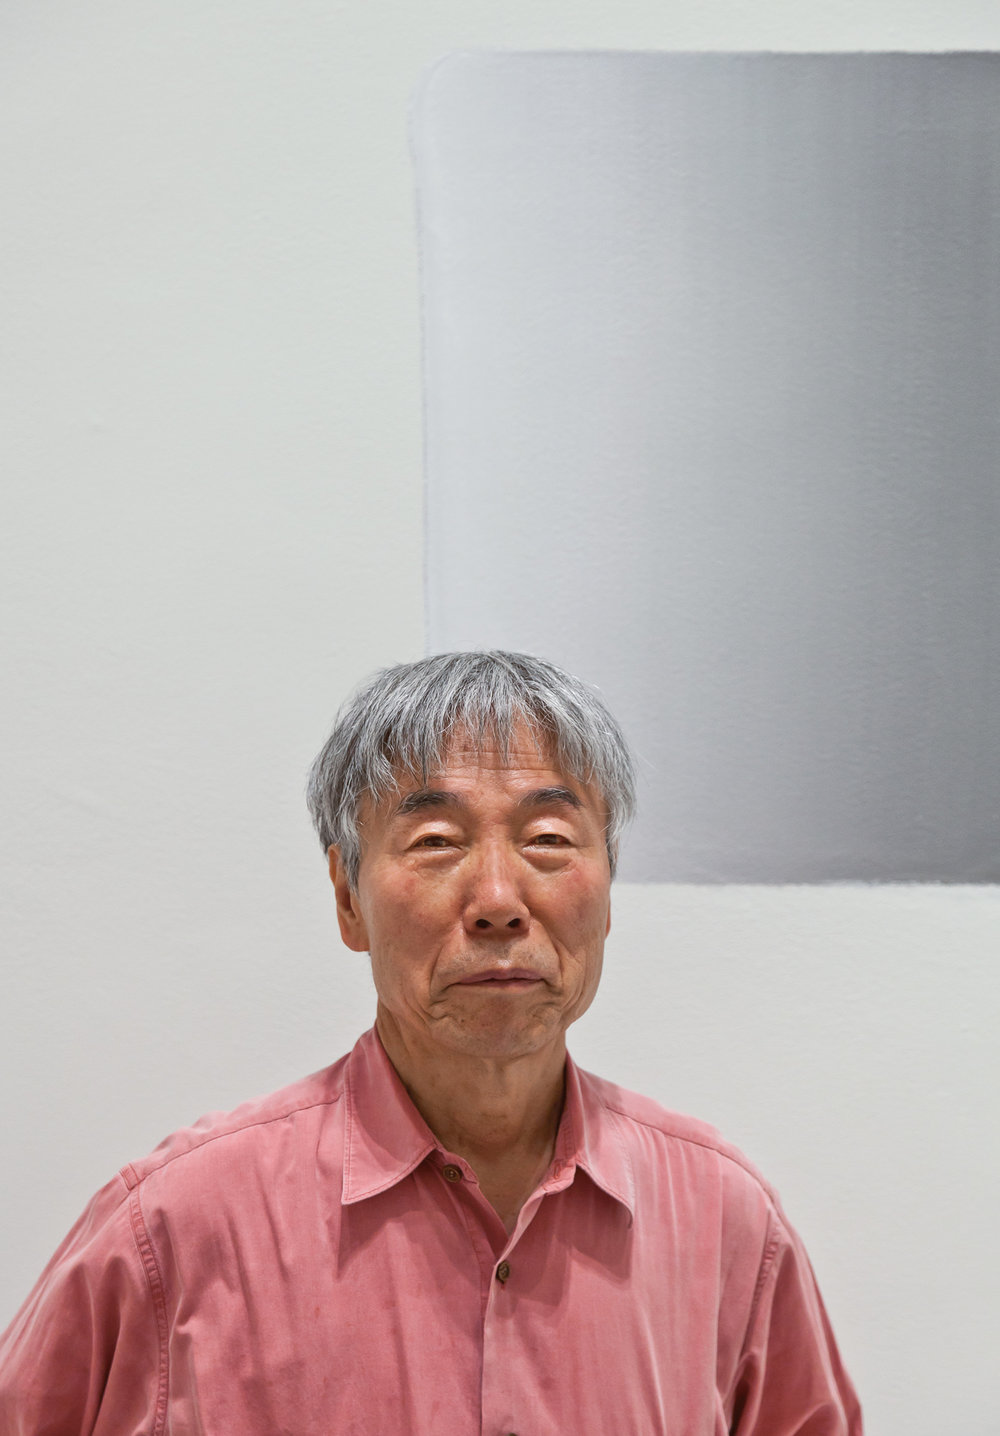 Lee Ufan for the Guggenheim 2011